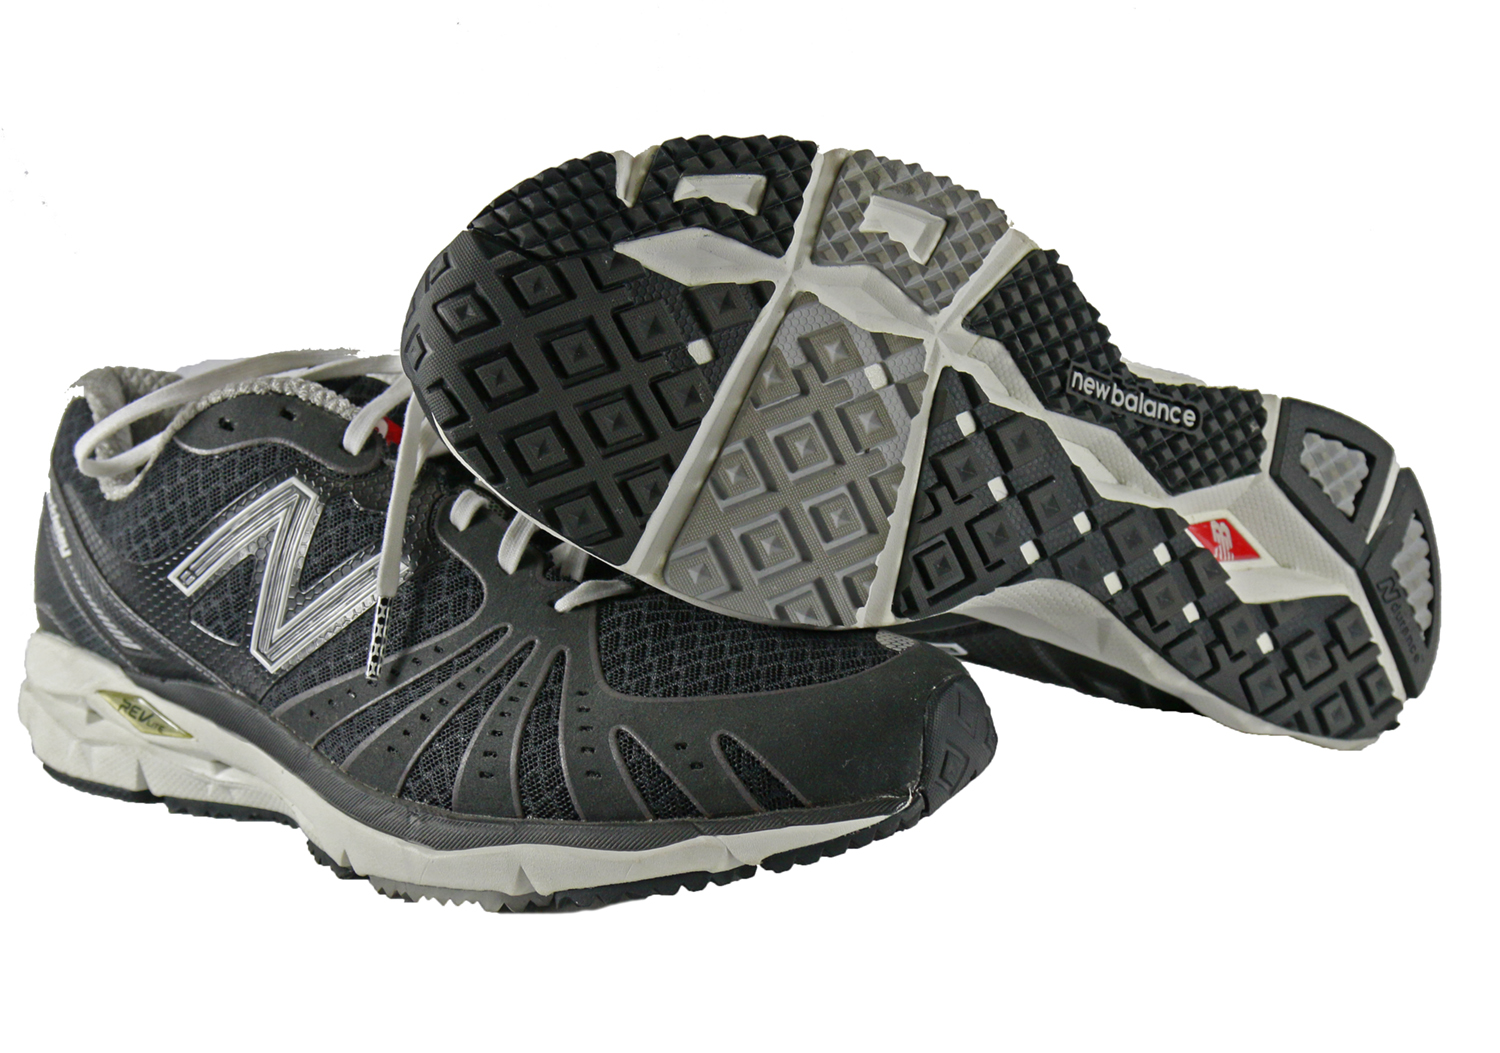 636748c86d15 New Balance Mens MR890 Running Course Shoes in Black White size 10 ...